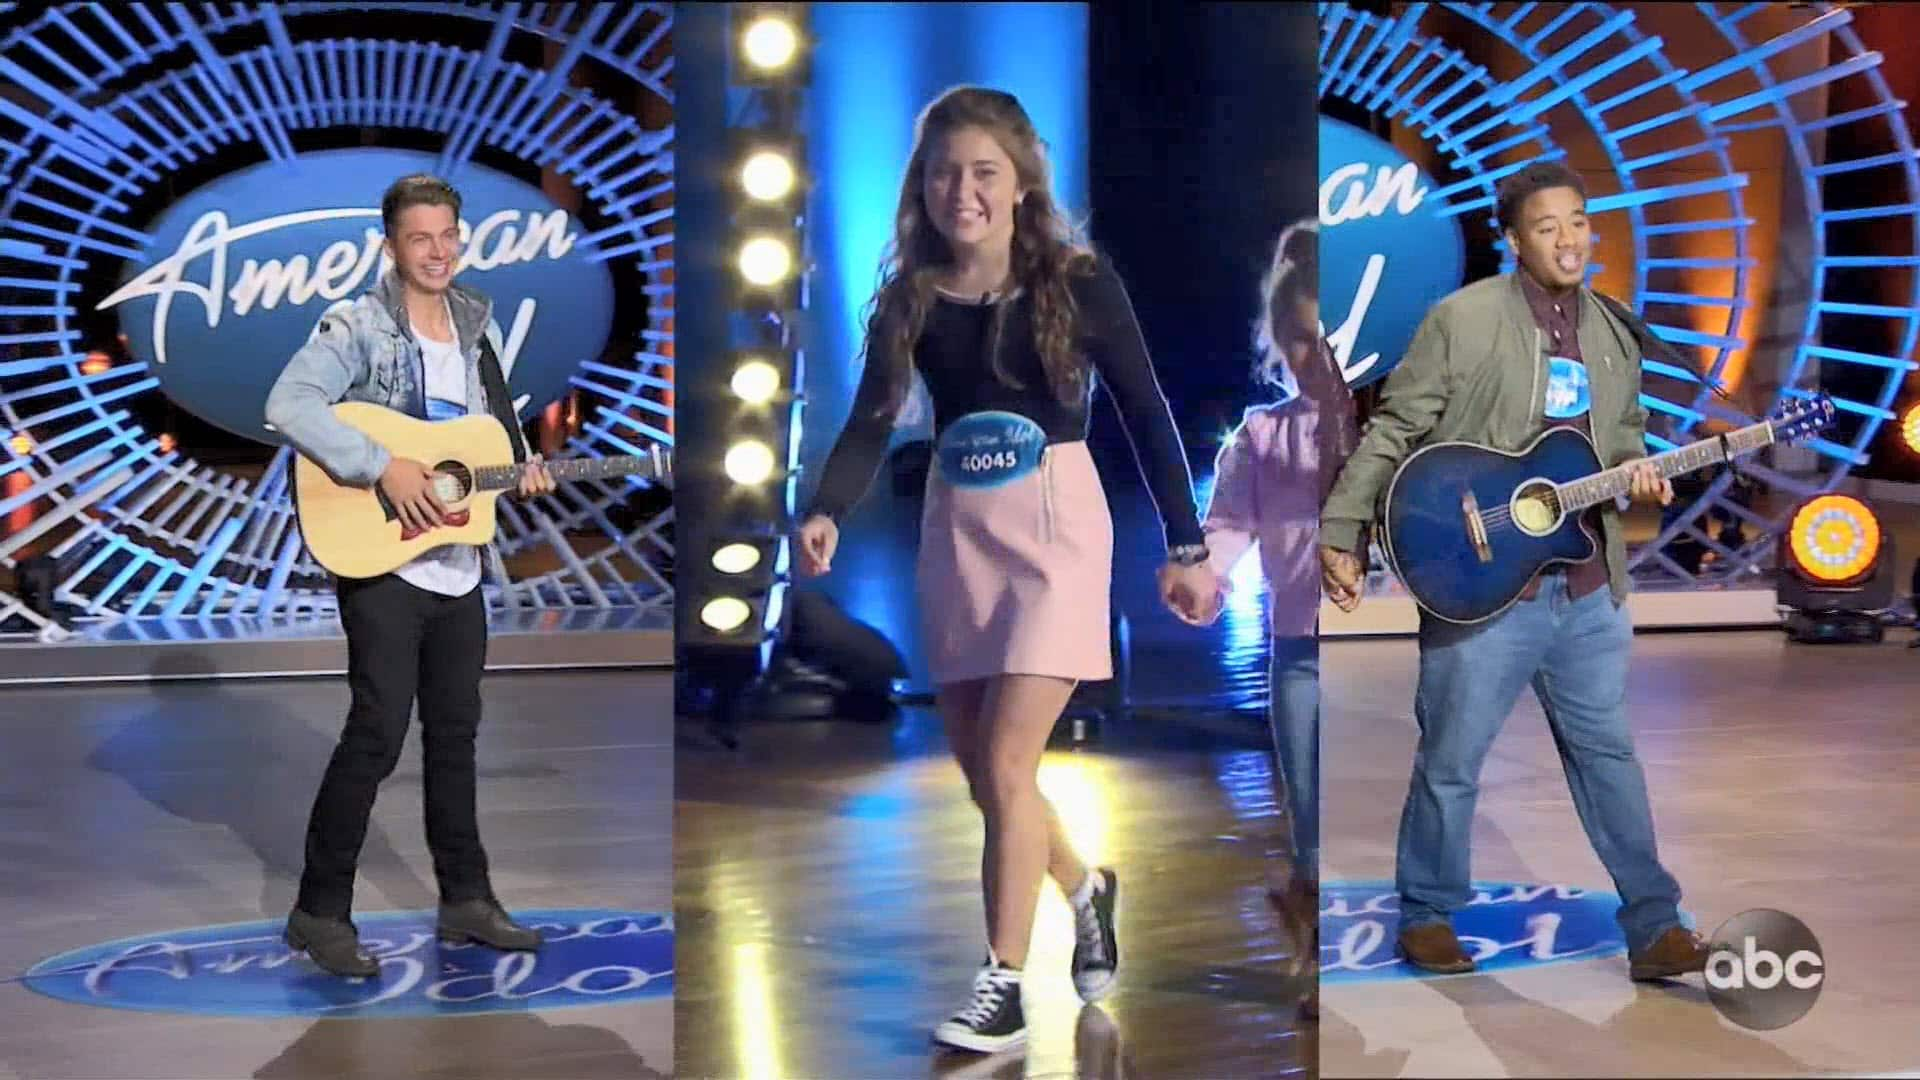 American Idol Tour 2020.Who Are The American Idol Alums Singing On The Amas For Your